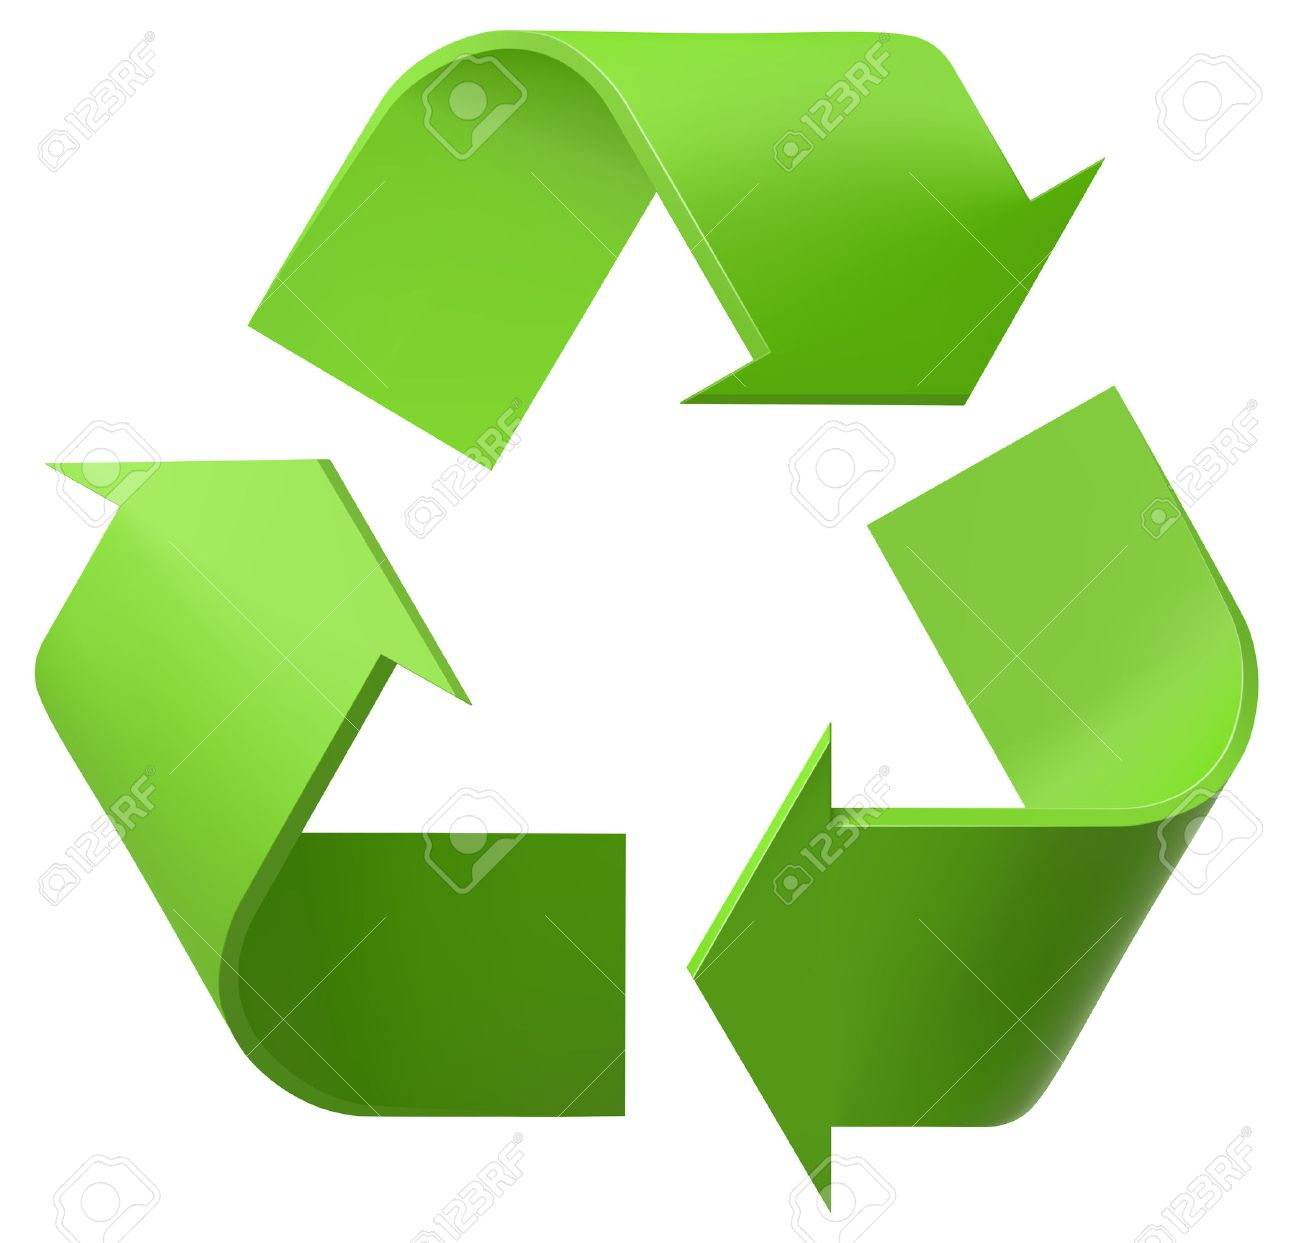 recycle logo royalty free cliparts vectors and stock illustration rh 123rf com recycle logo vector free recycle logo vector free